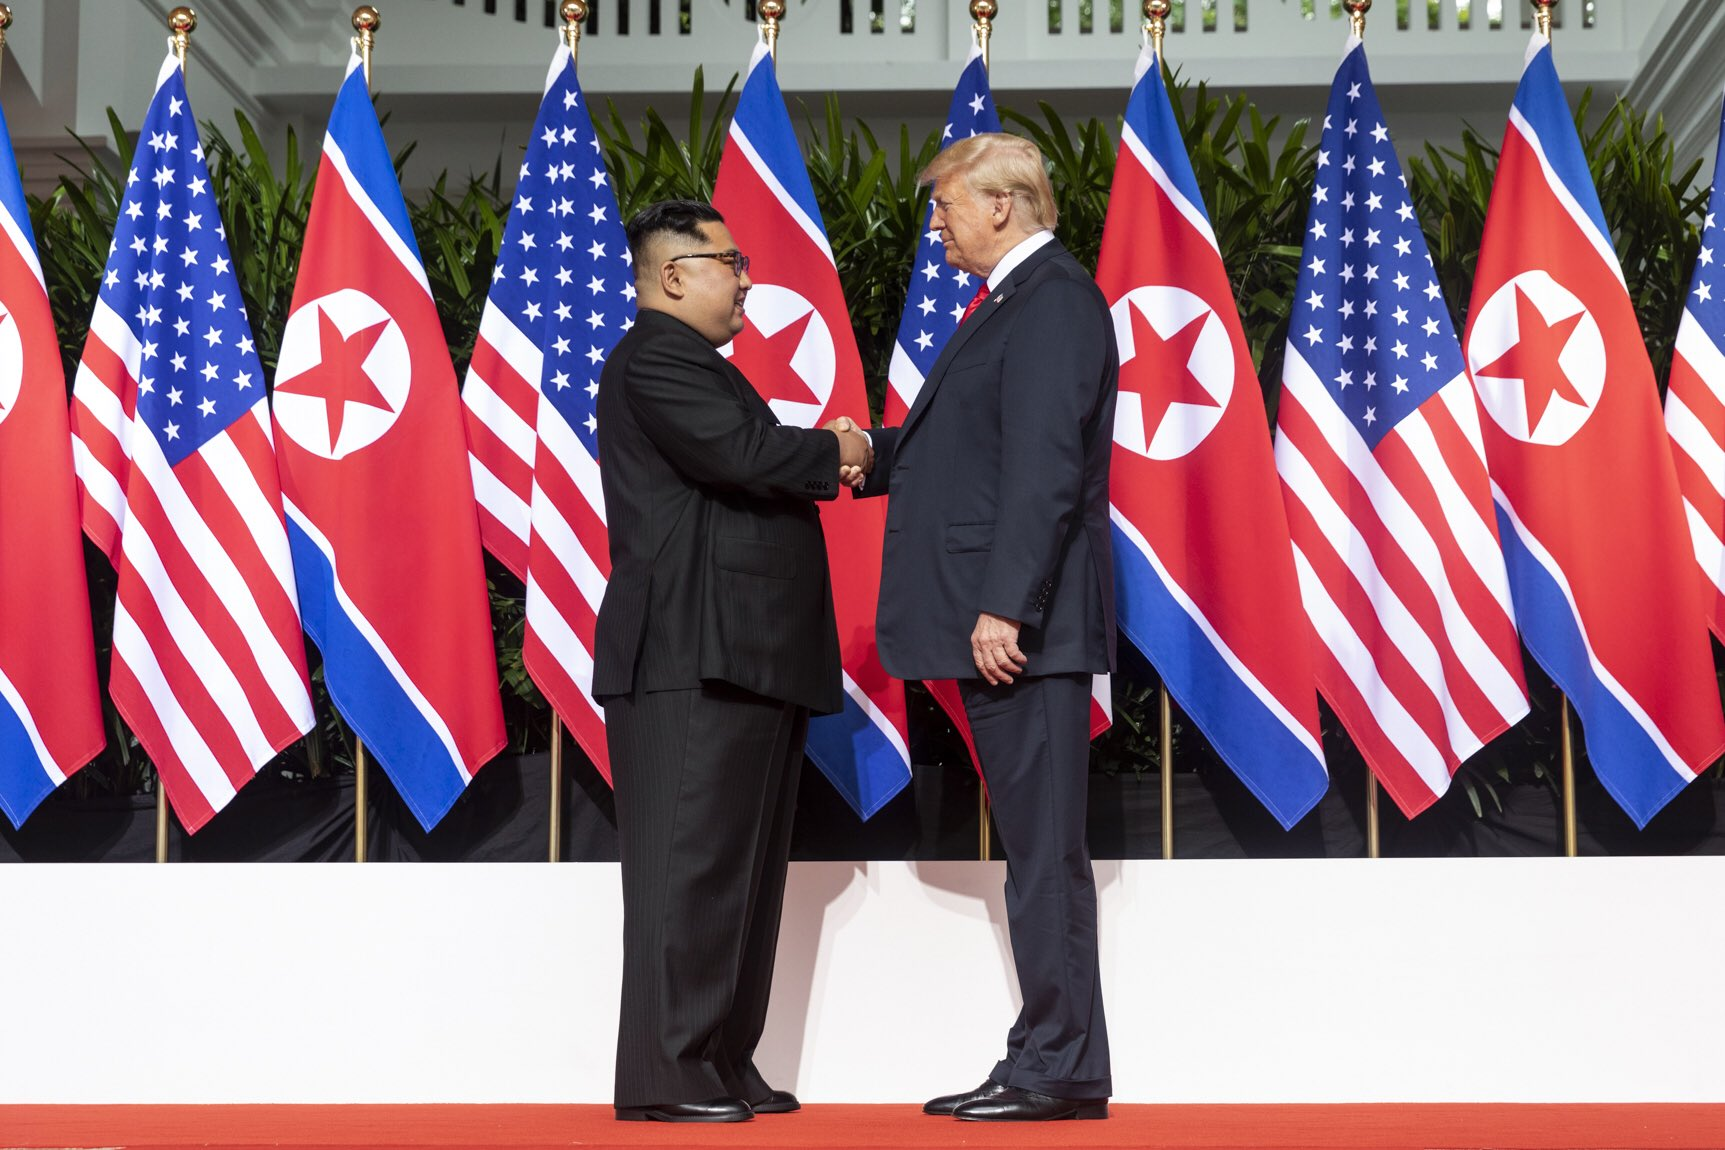 Kim_and_Trump_shaking_hands_at_the_red_carpet_during_the_DPRK–USA_Singapore_Summit.jpg